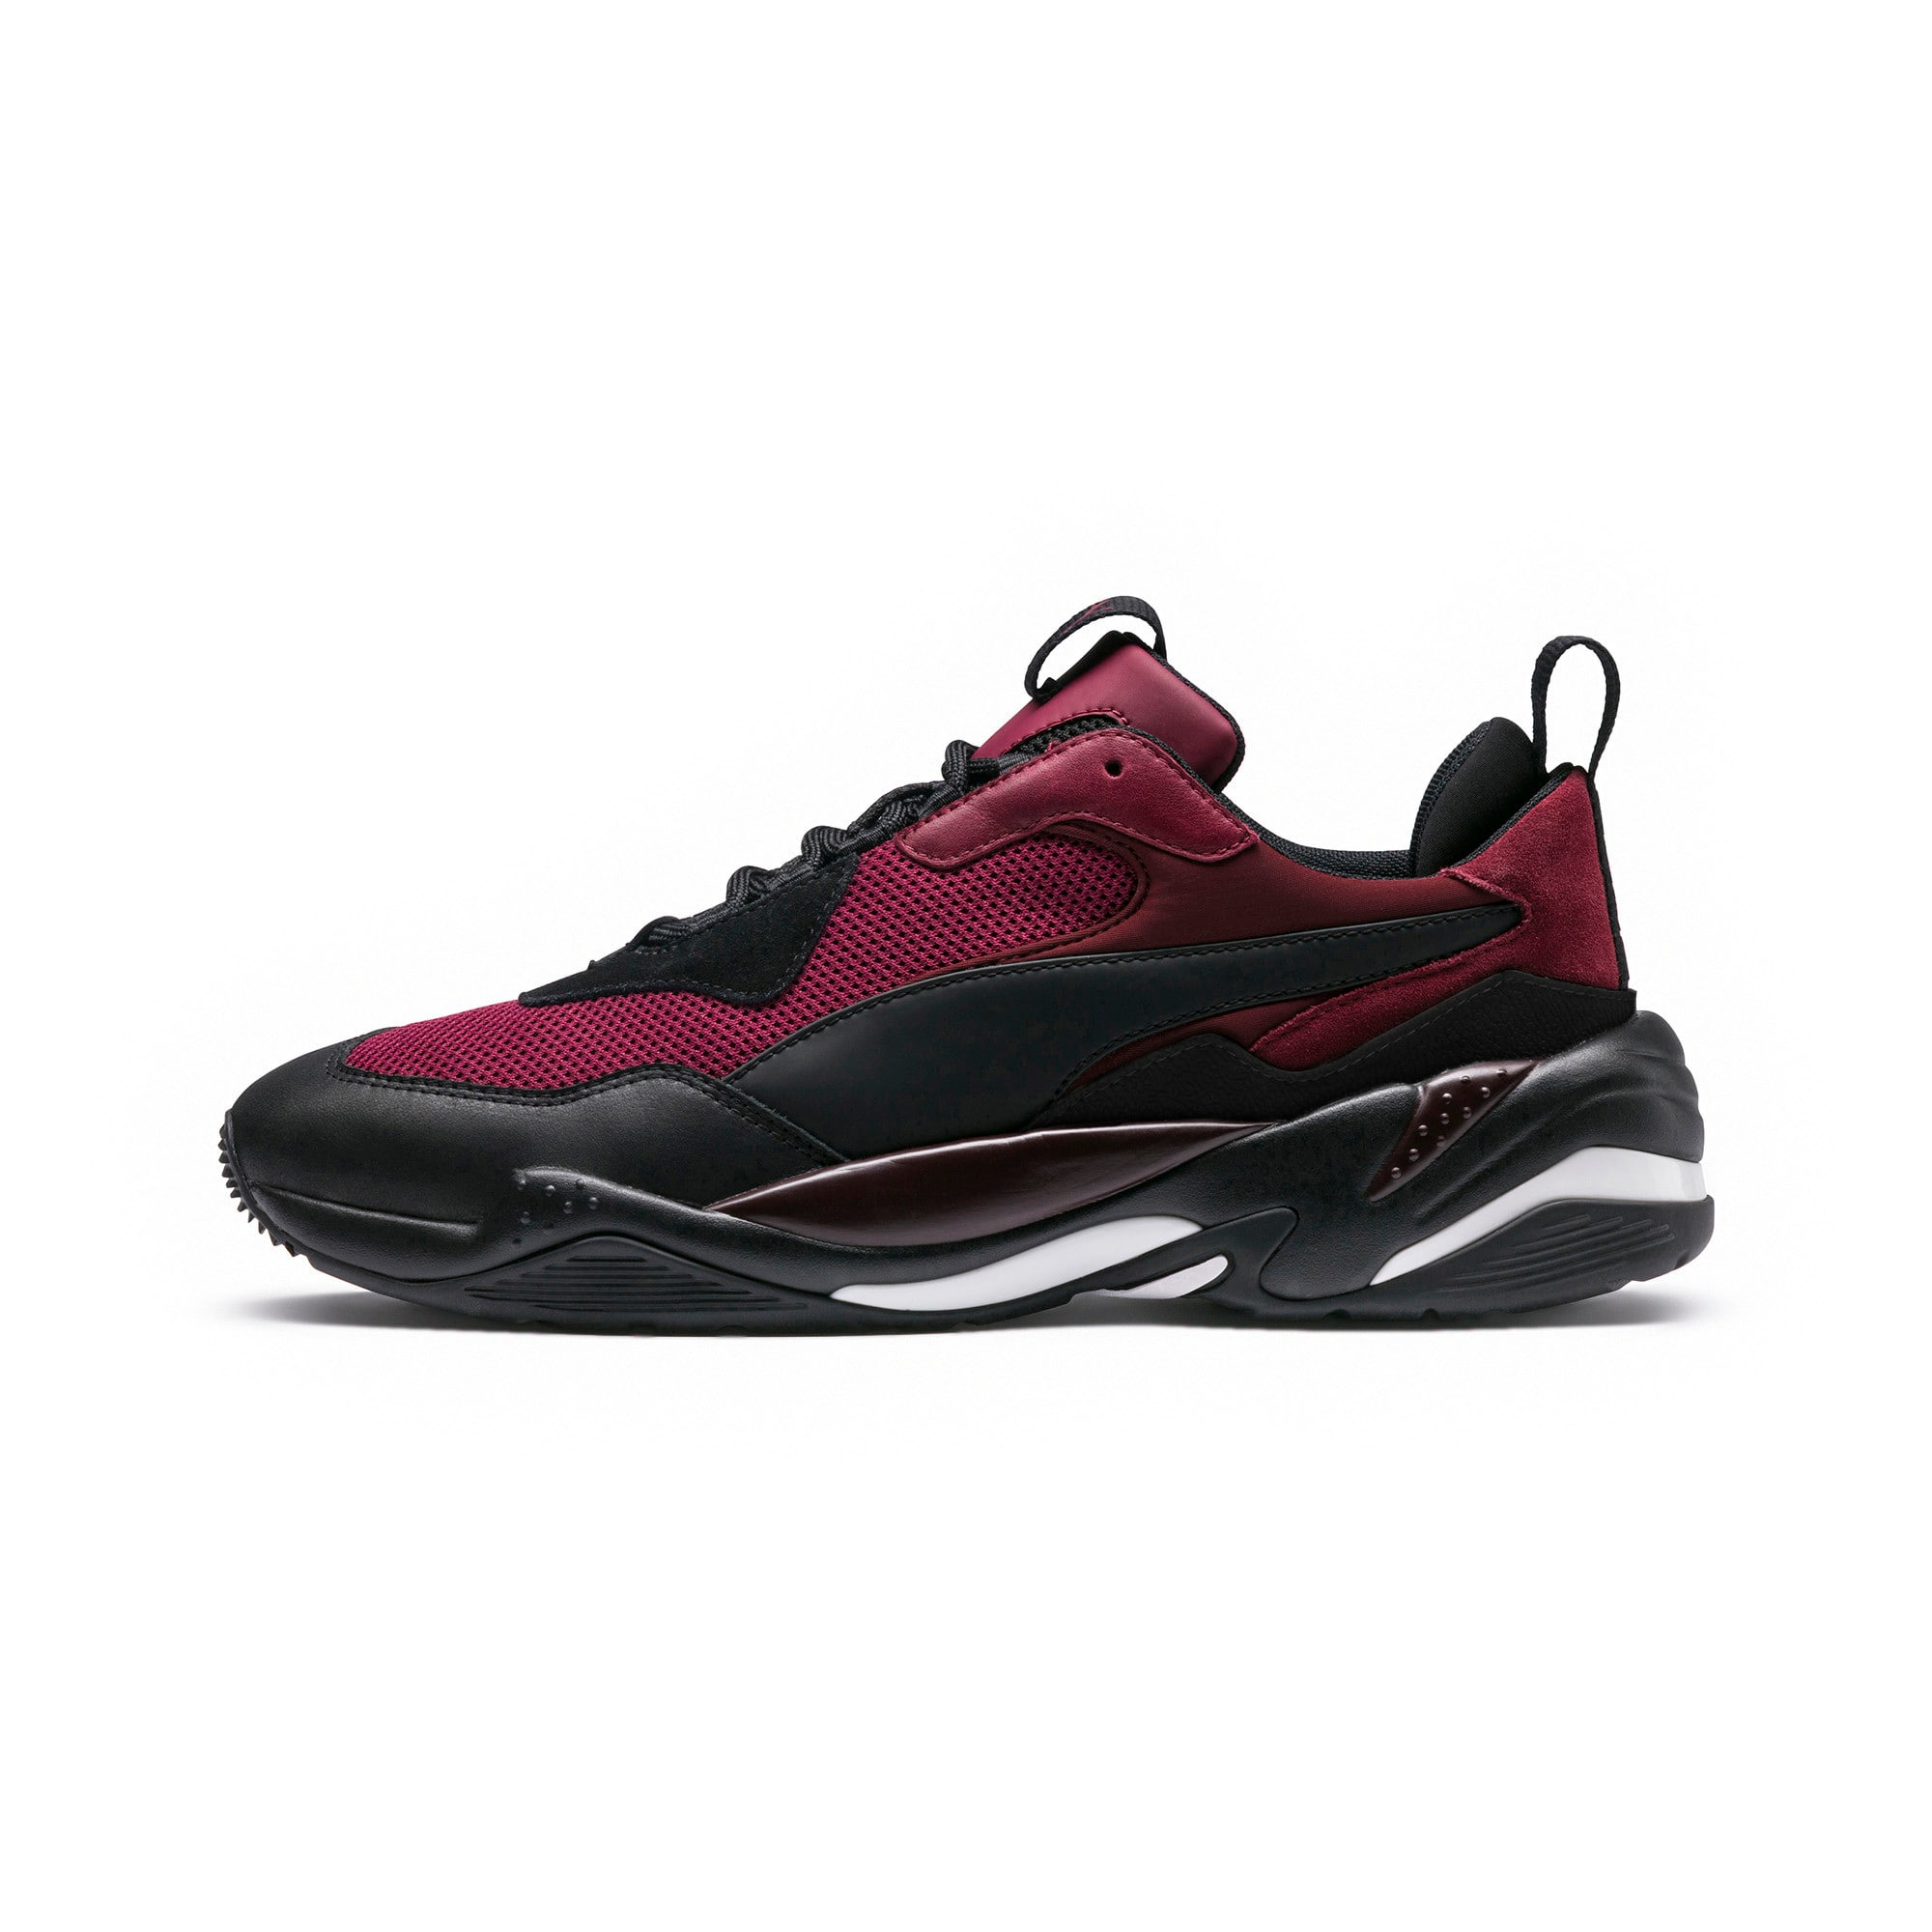 Thumbnail 1 of Thunder Spectra Sneakers, Rhododendron-P Black-T Port, medium